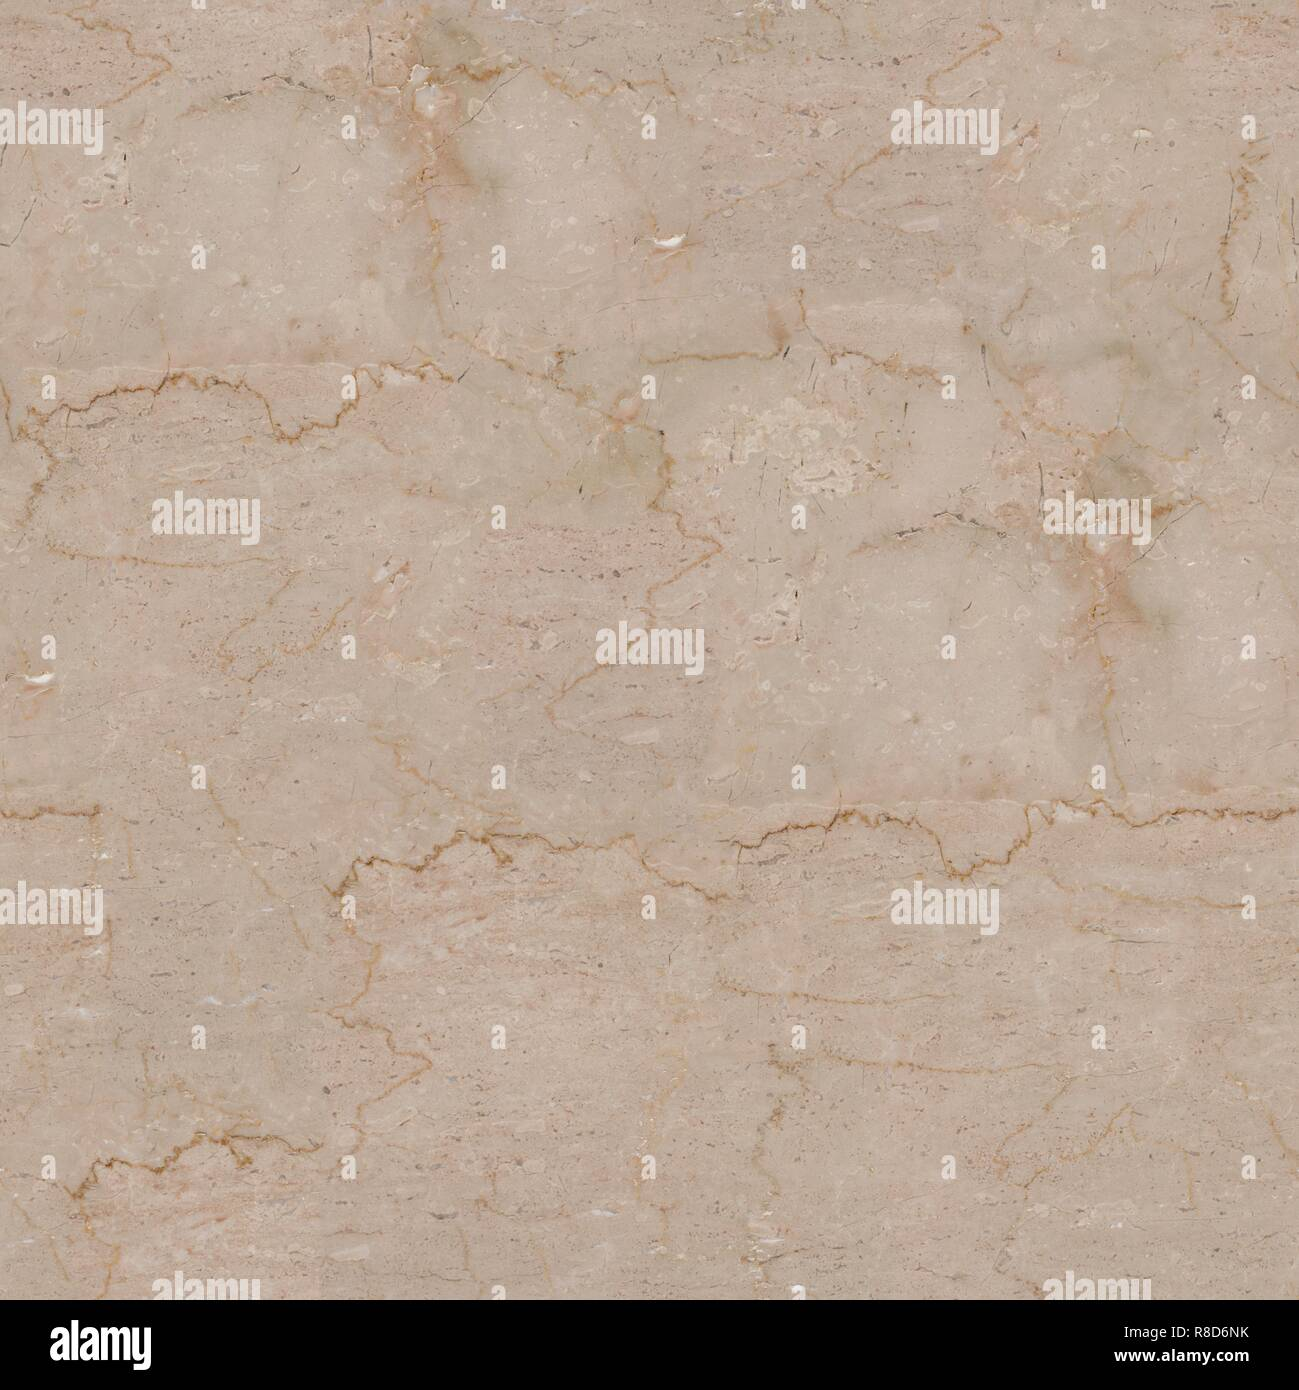 Marble Texture Seamless Square Background Tile Ready Stock Photo Alamy